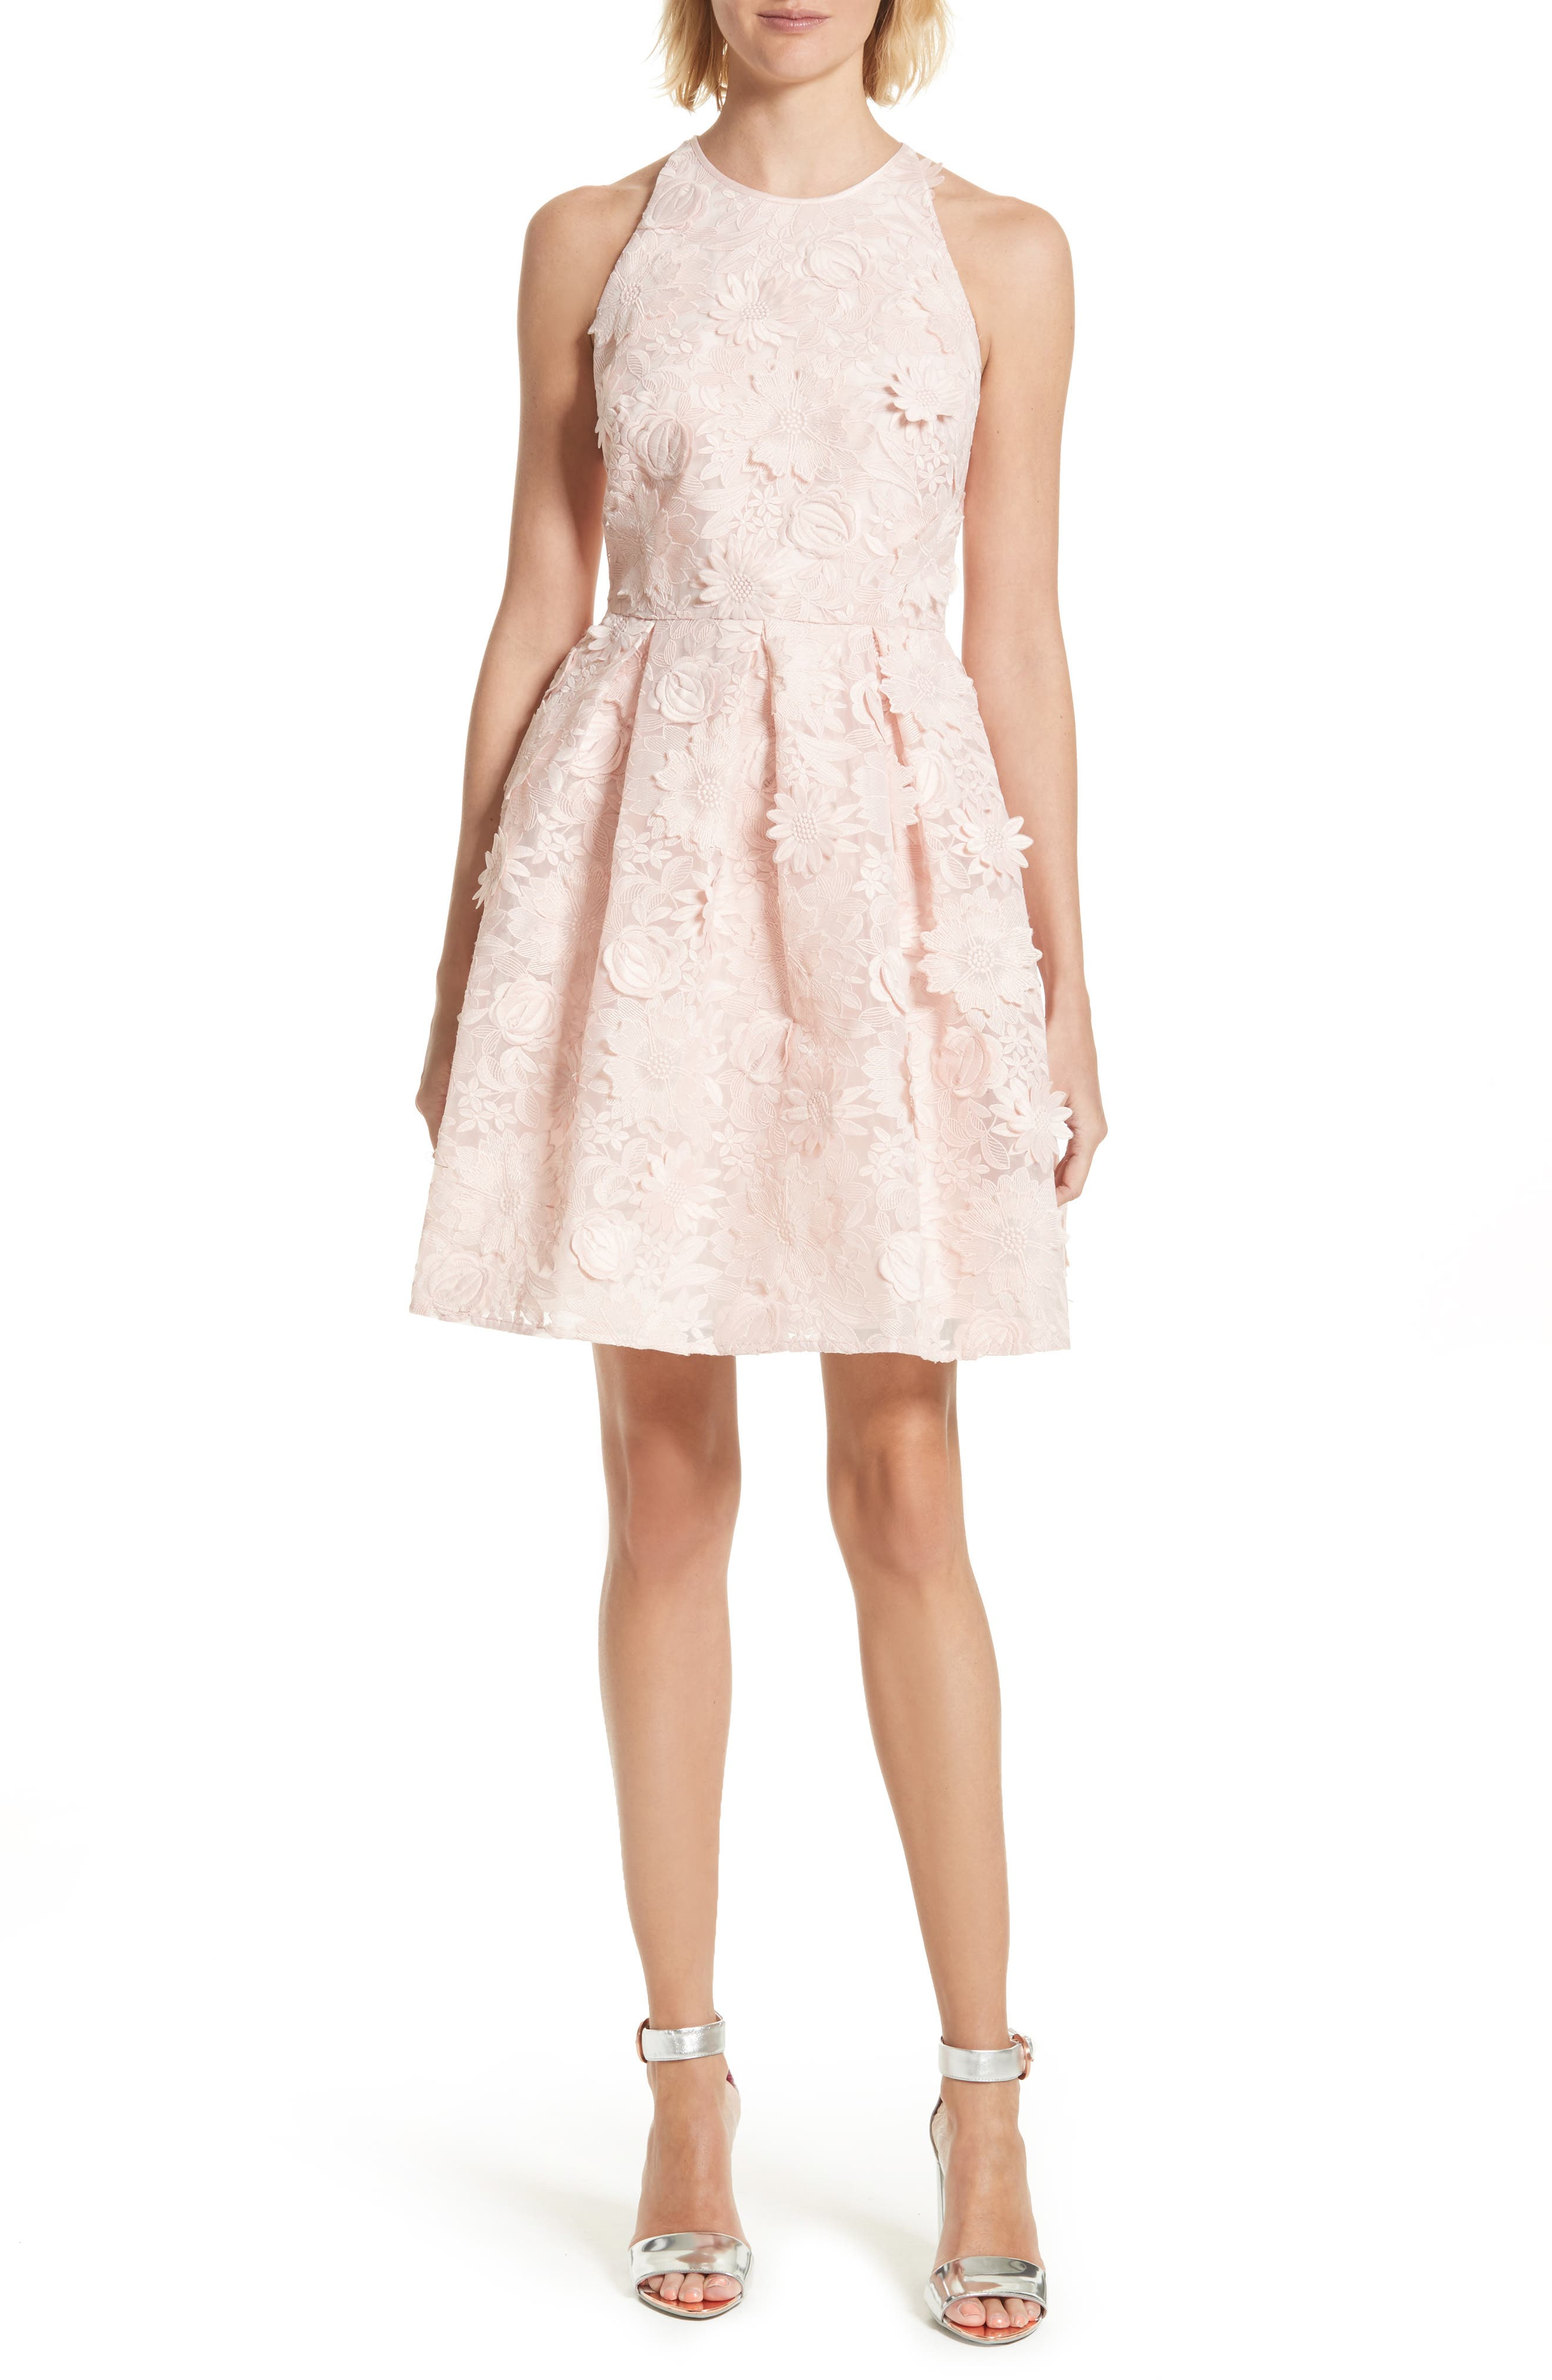 Sweetee Lace Skater Dress,                         Main,                         color, 682